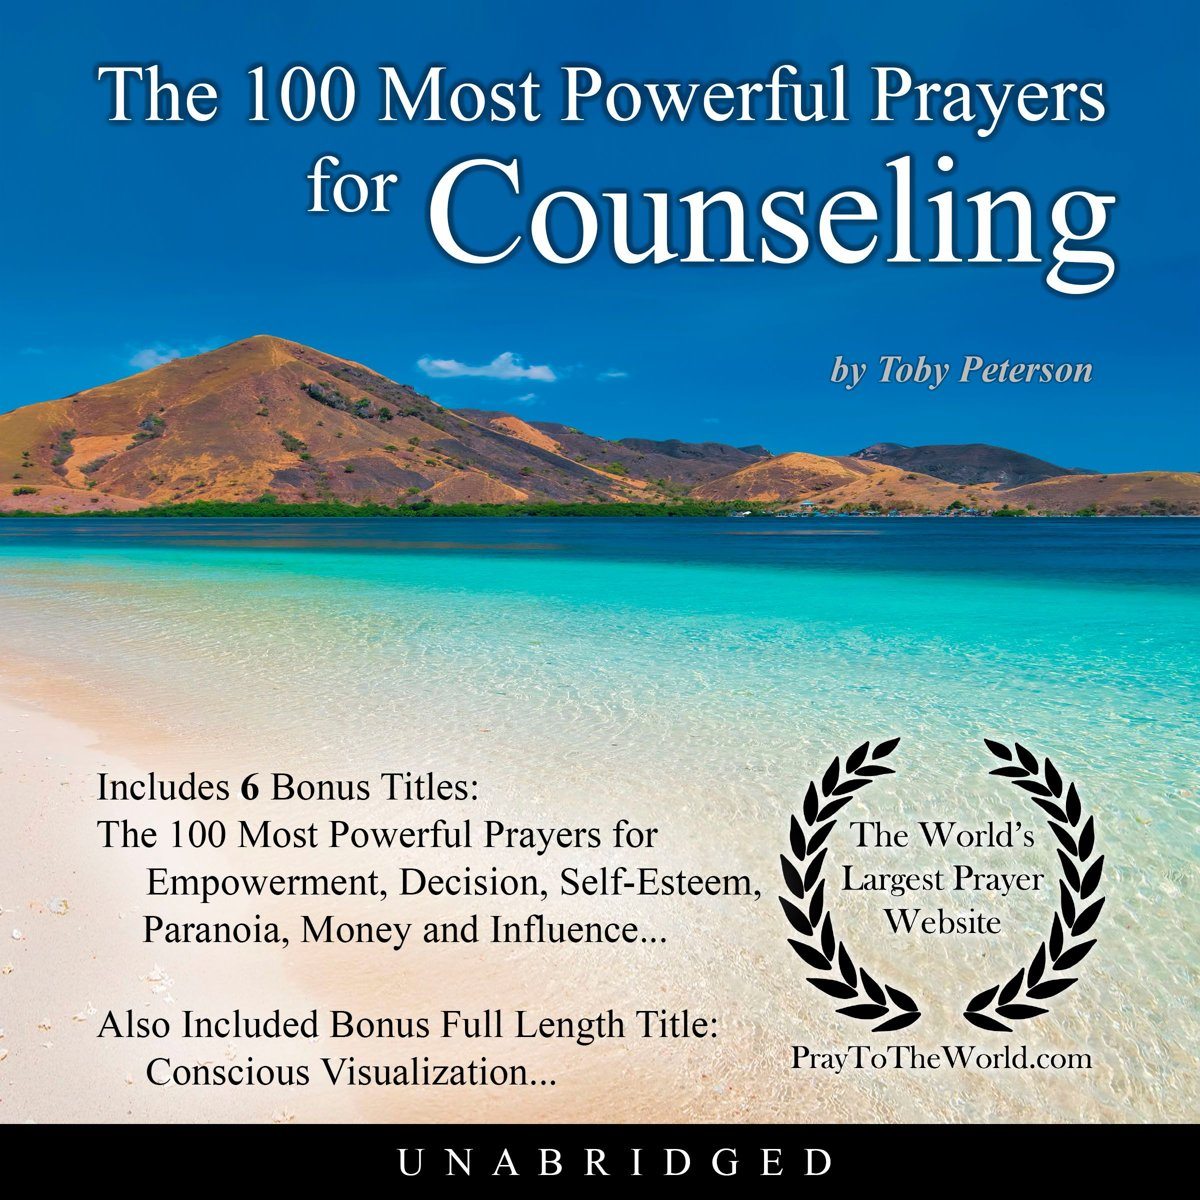 The 100 Most Powerful Prayers for Counseling